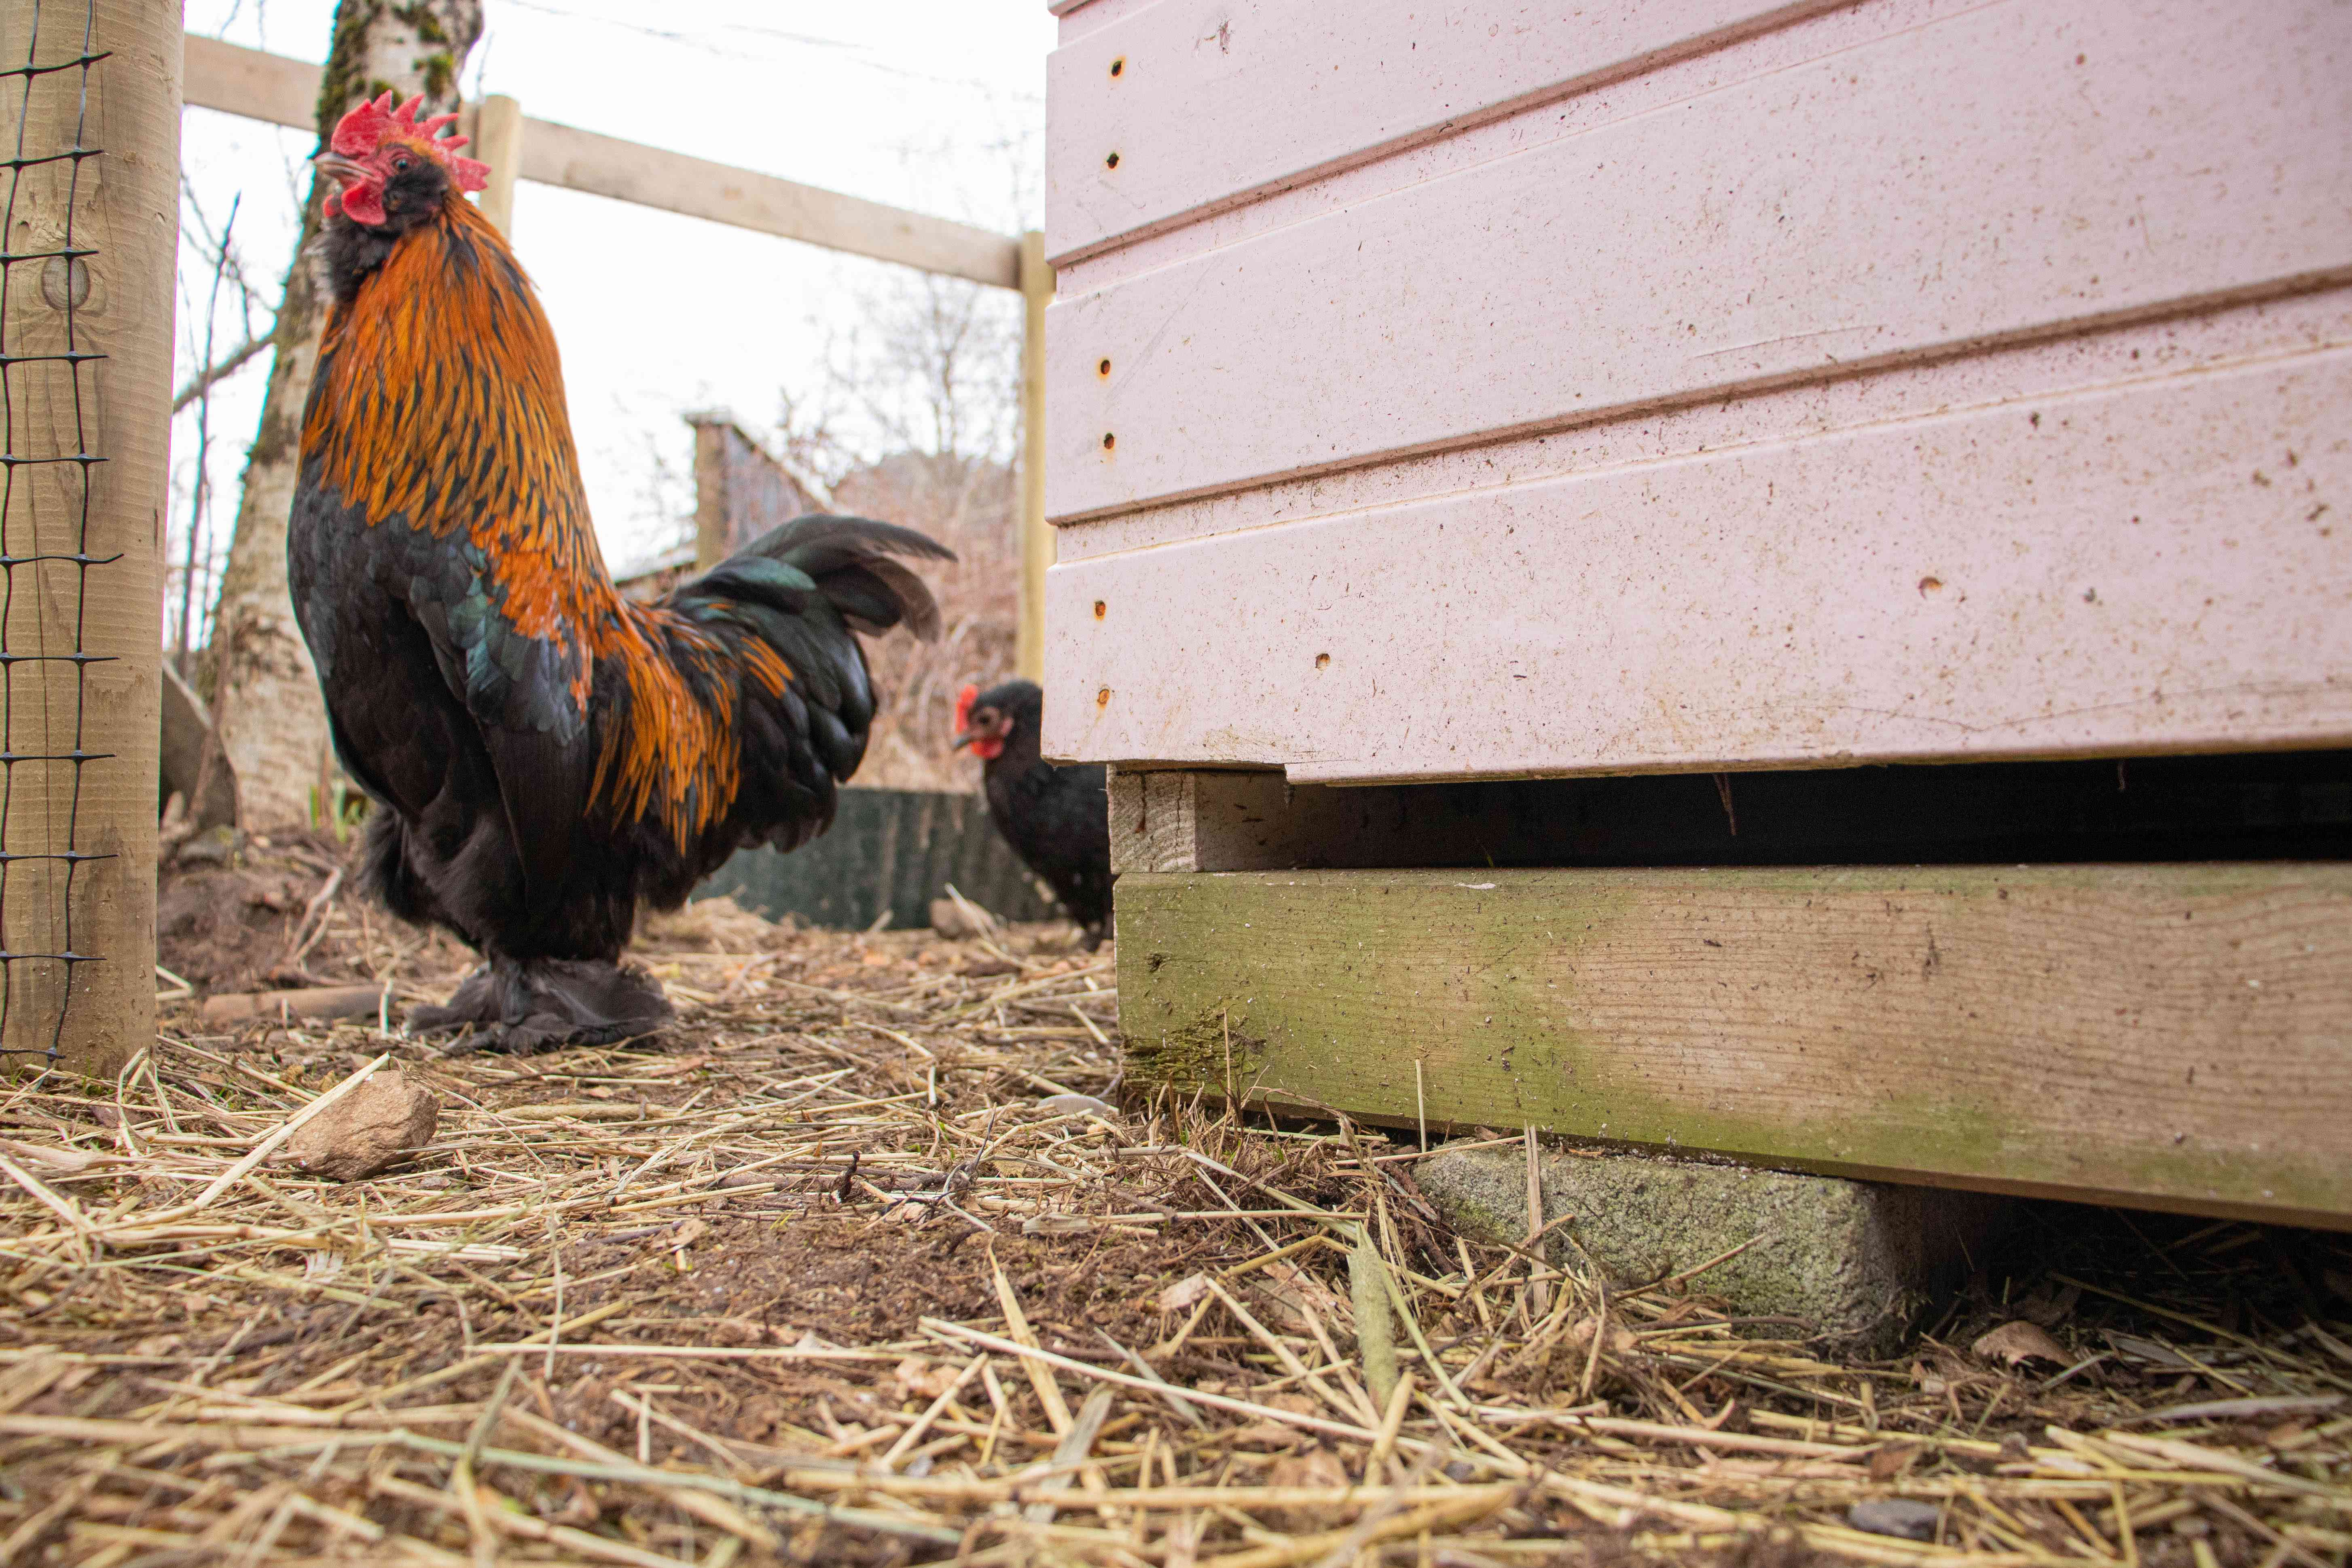 Chicken coop elevated from the ground to prevent predators